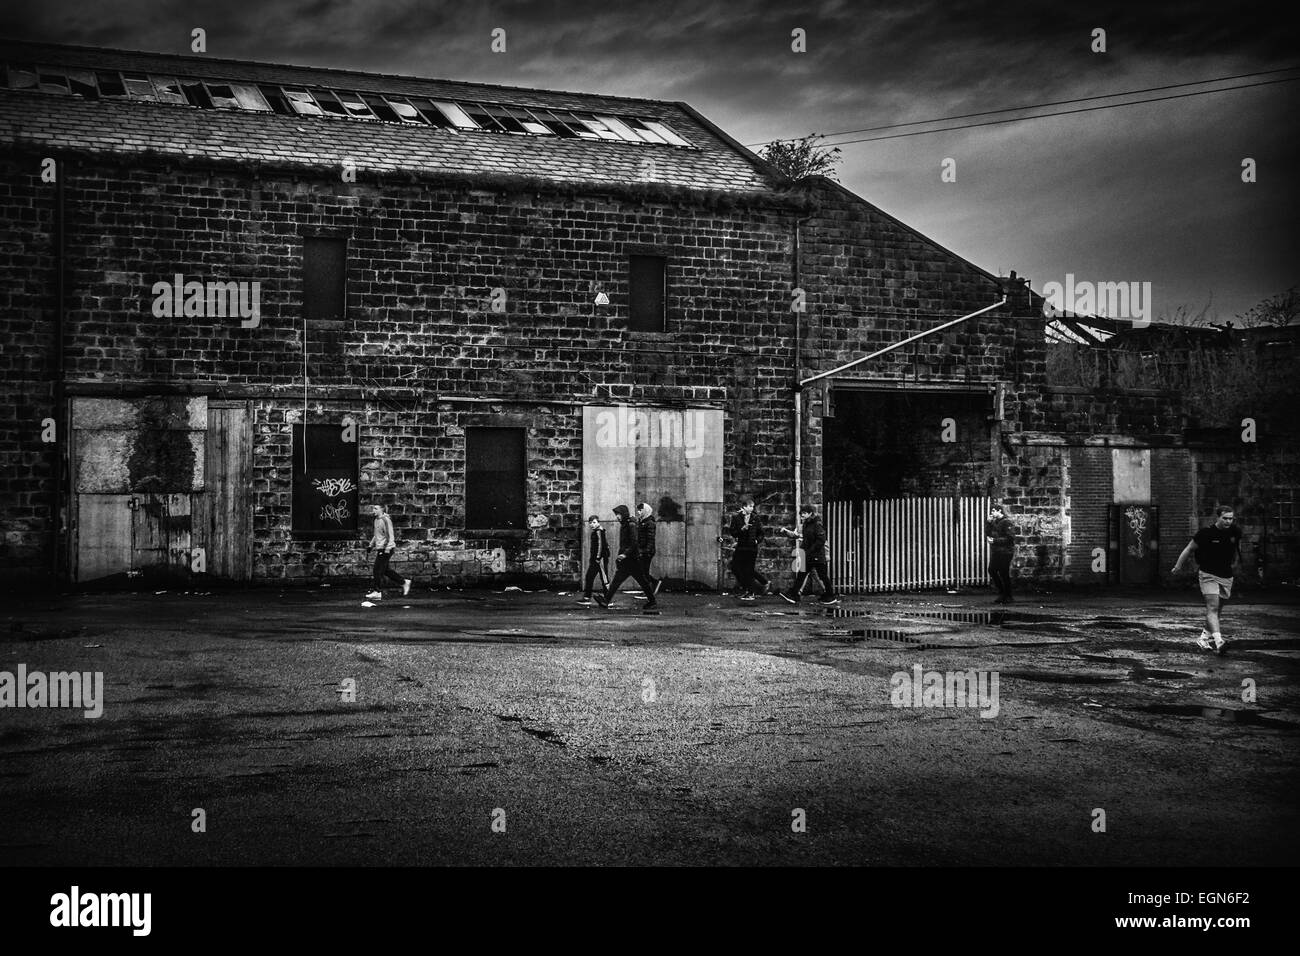 Derelict Yorkshire stone mill/warehouse with youths - Stock Image